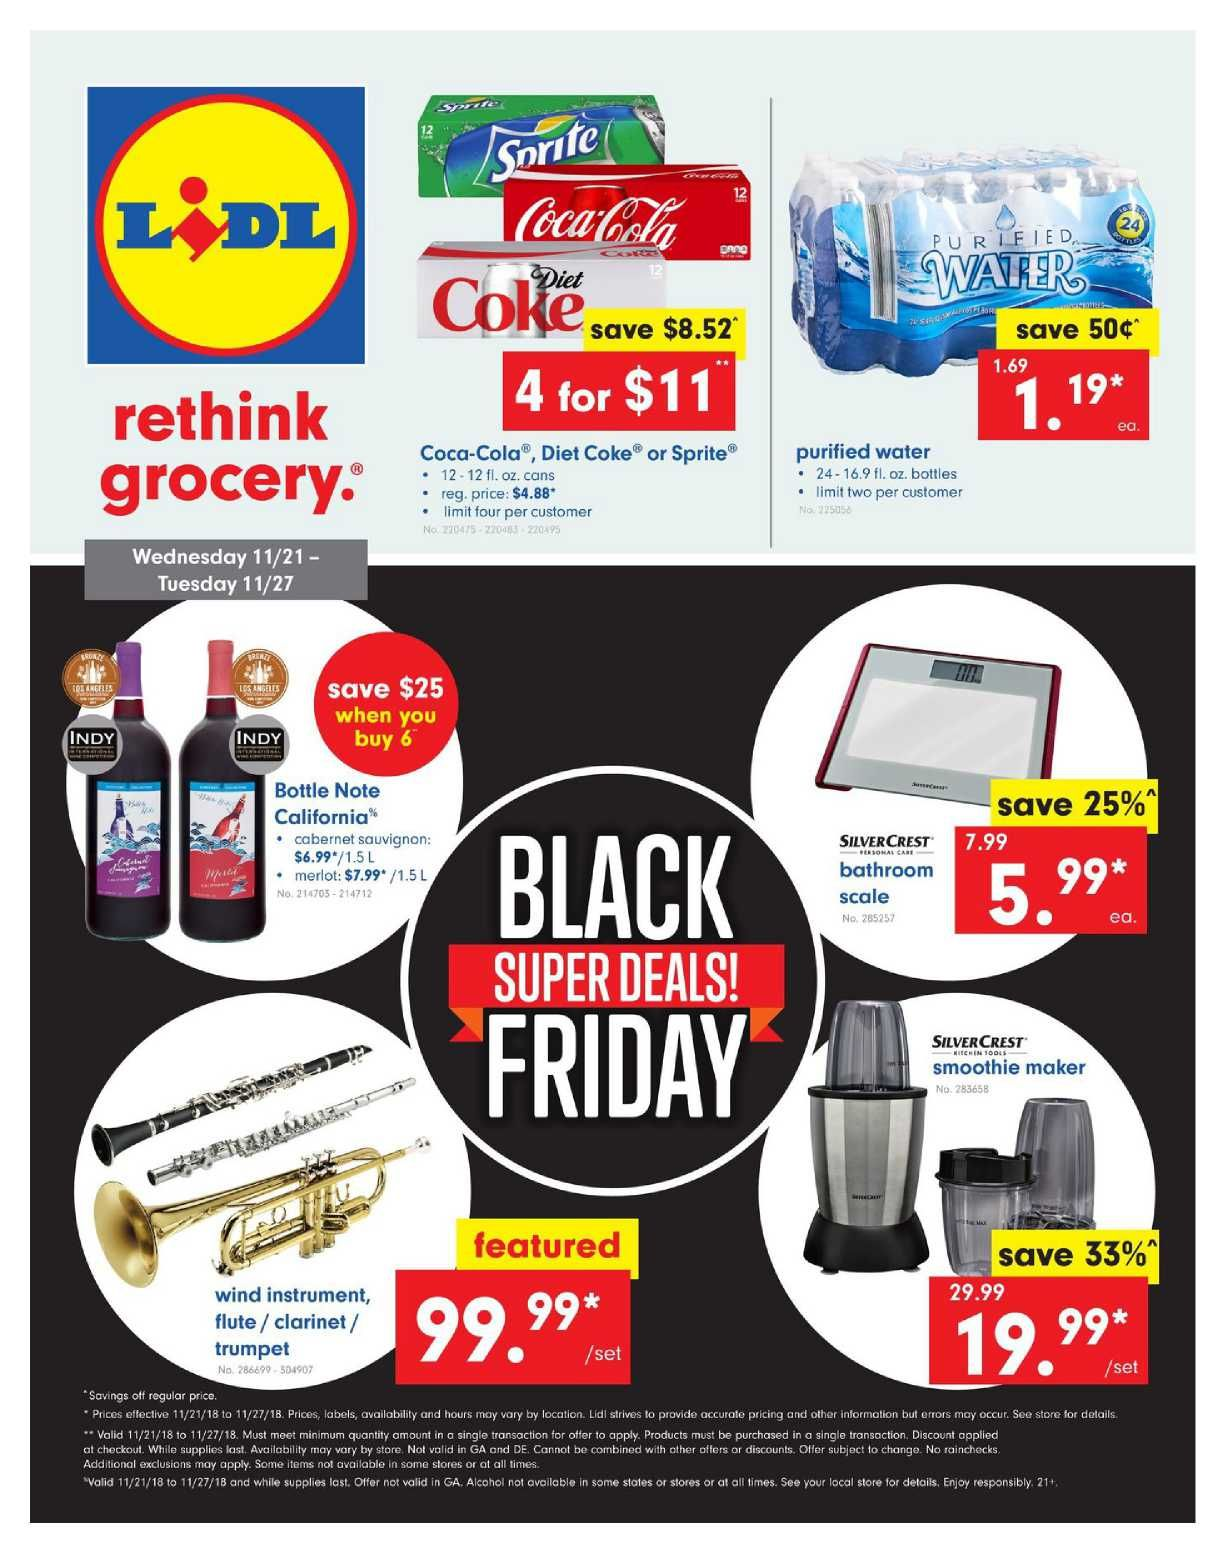 Lidl Weekly Ad Flyer Feb 26 Mar 3 2020 Weeklyad123 Com Weekly Ad Circular Grocery Stores Lidl Weekly Ads Grocery Savings